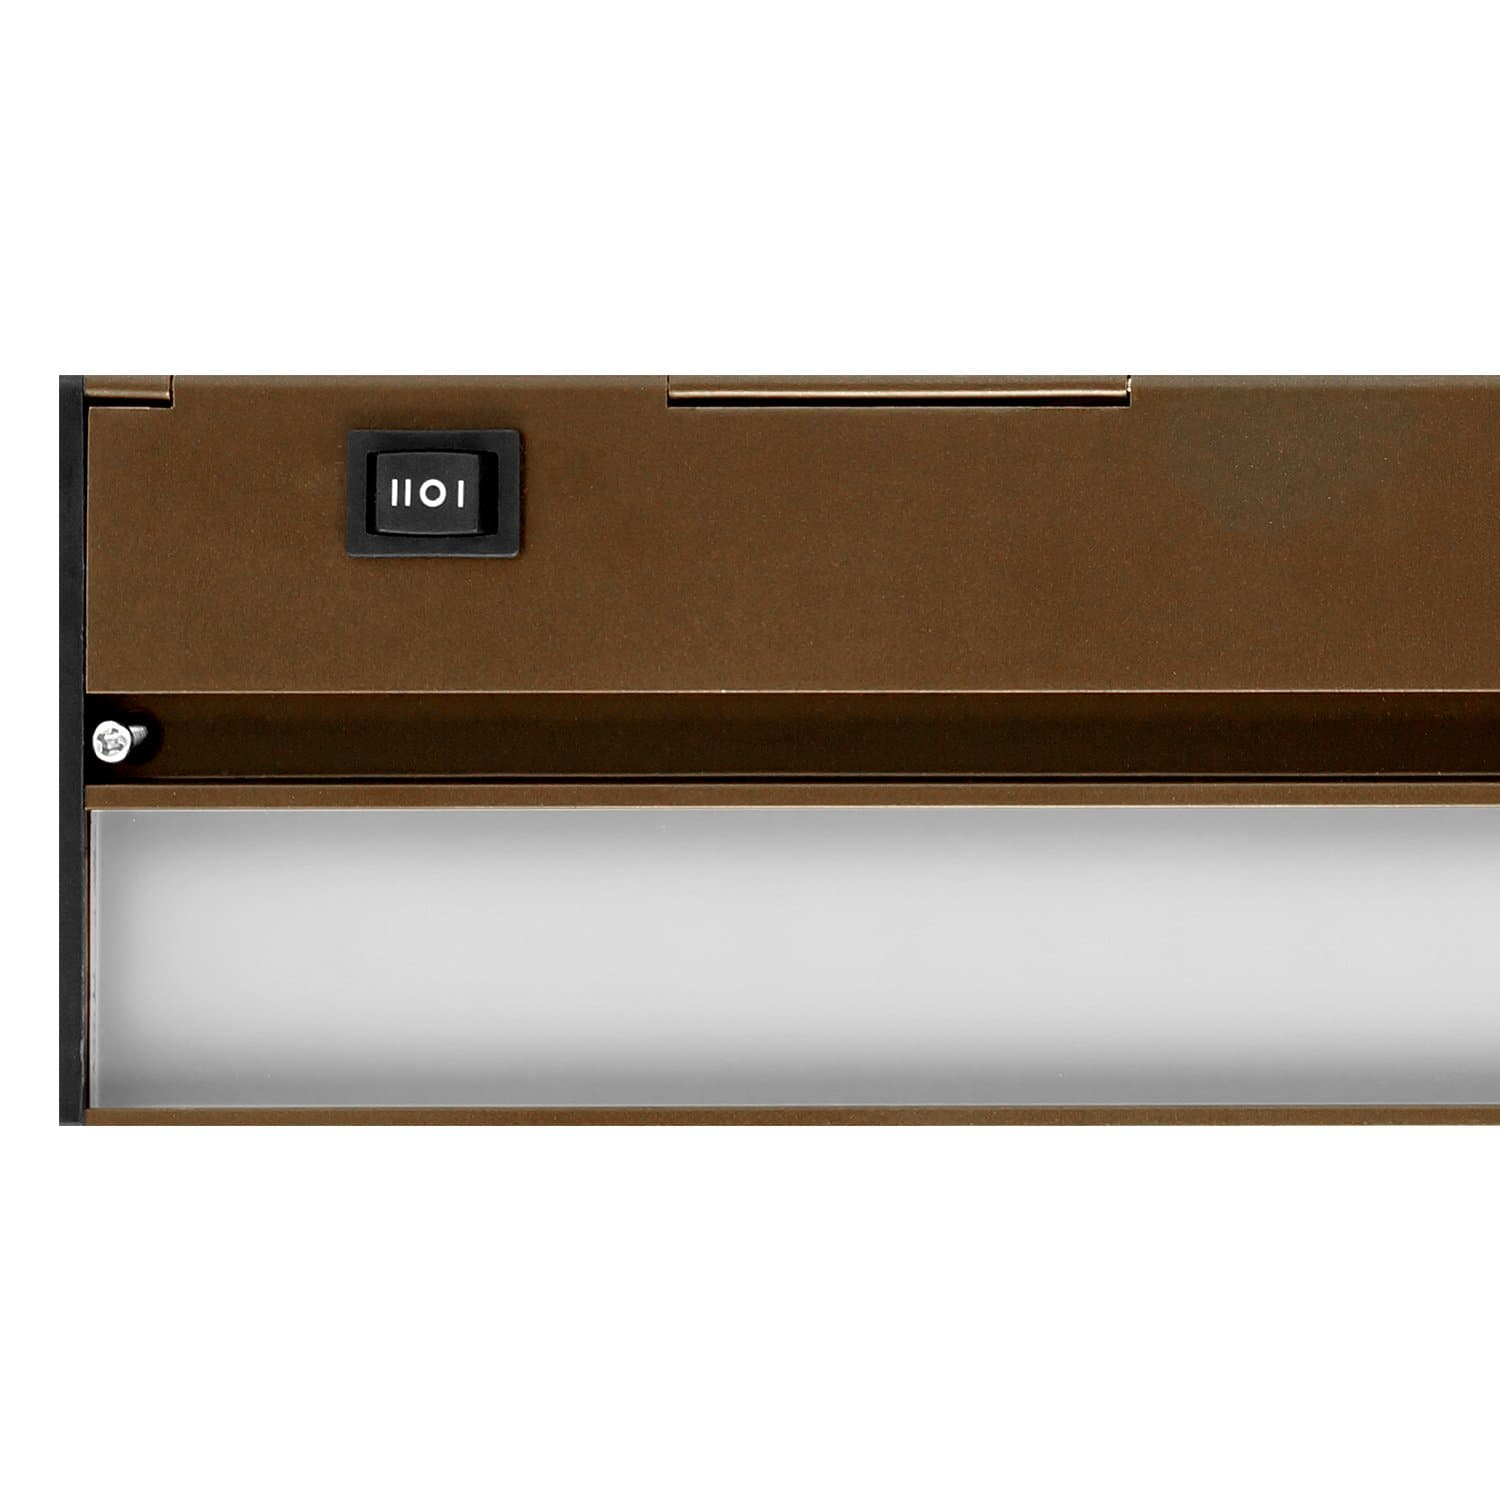 NICOR Slim 21 inch Dimmable LED Under-Cabinet Lighting Fixture Bronze Finish